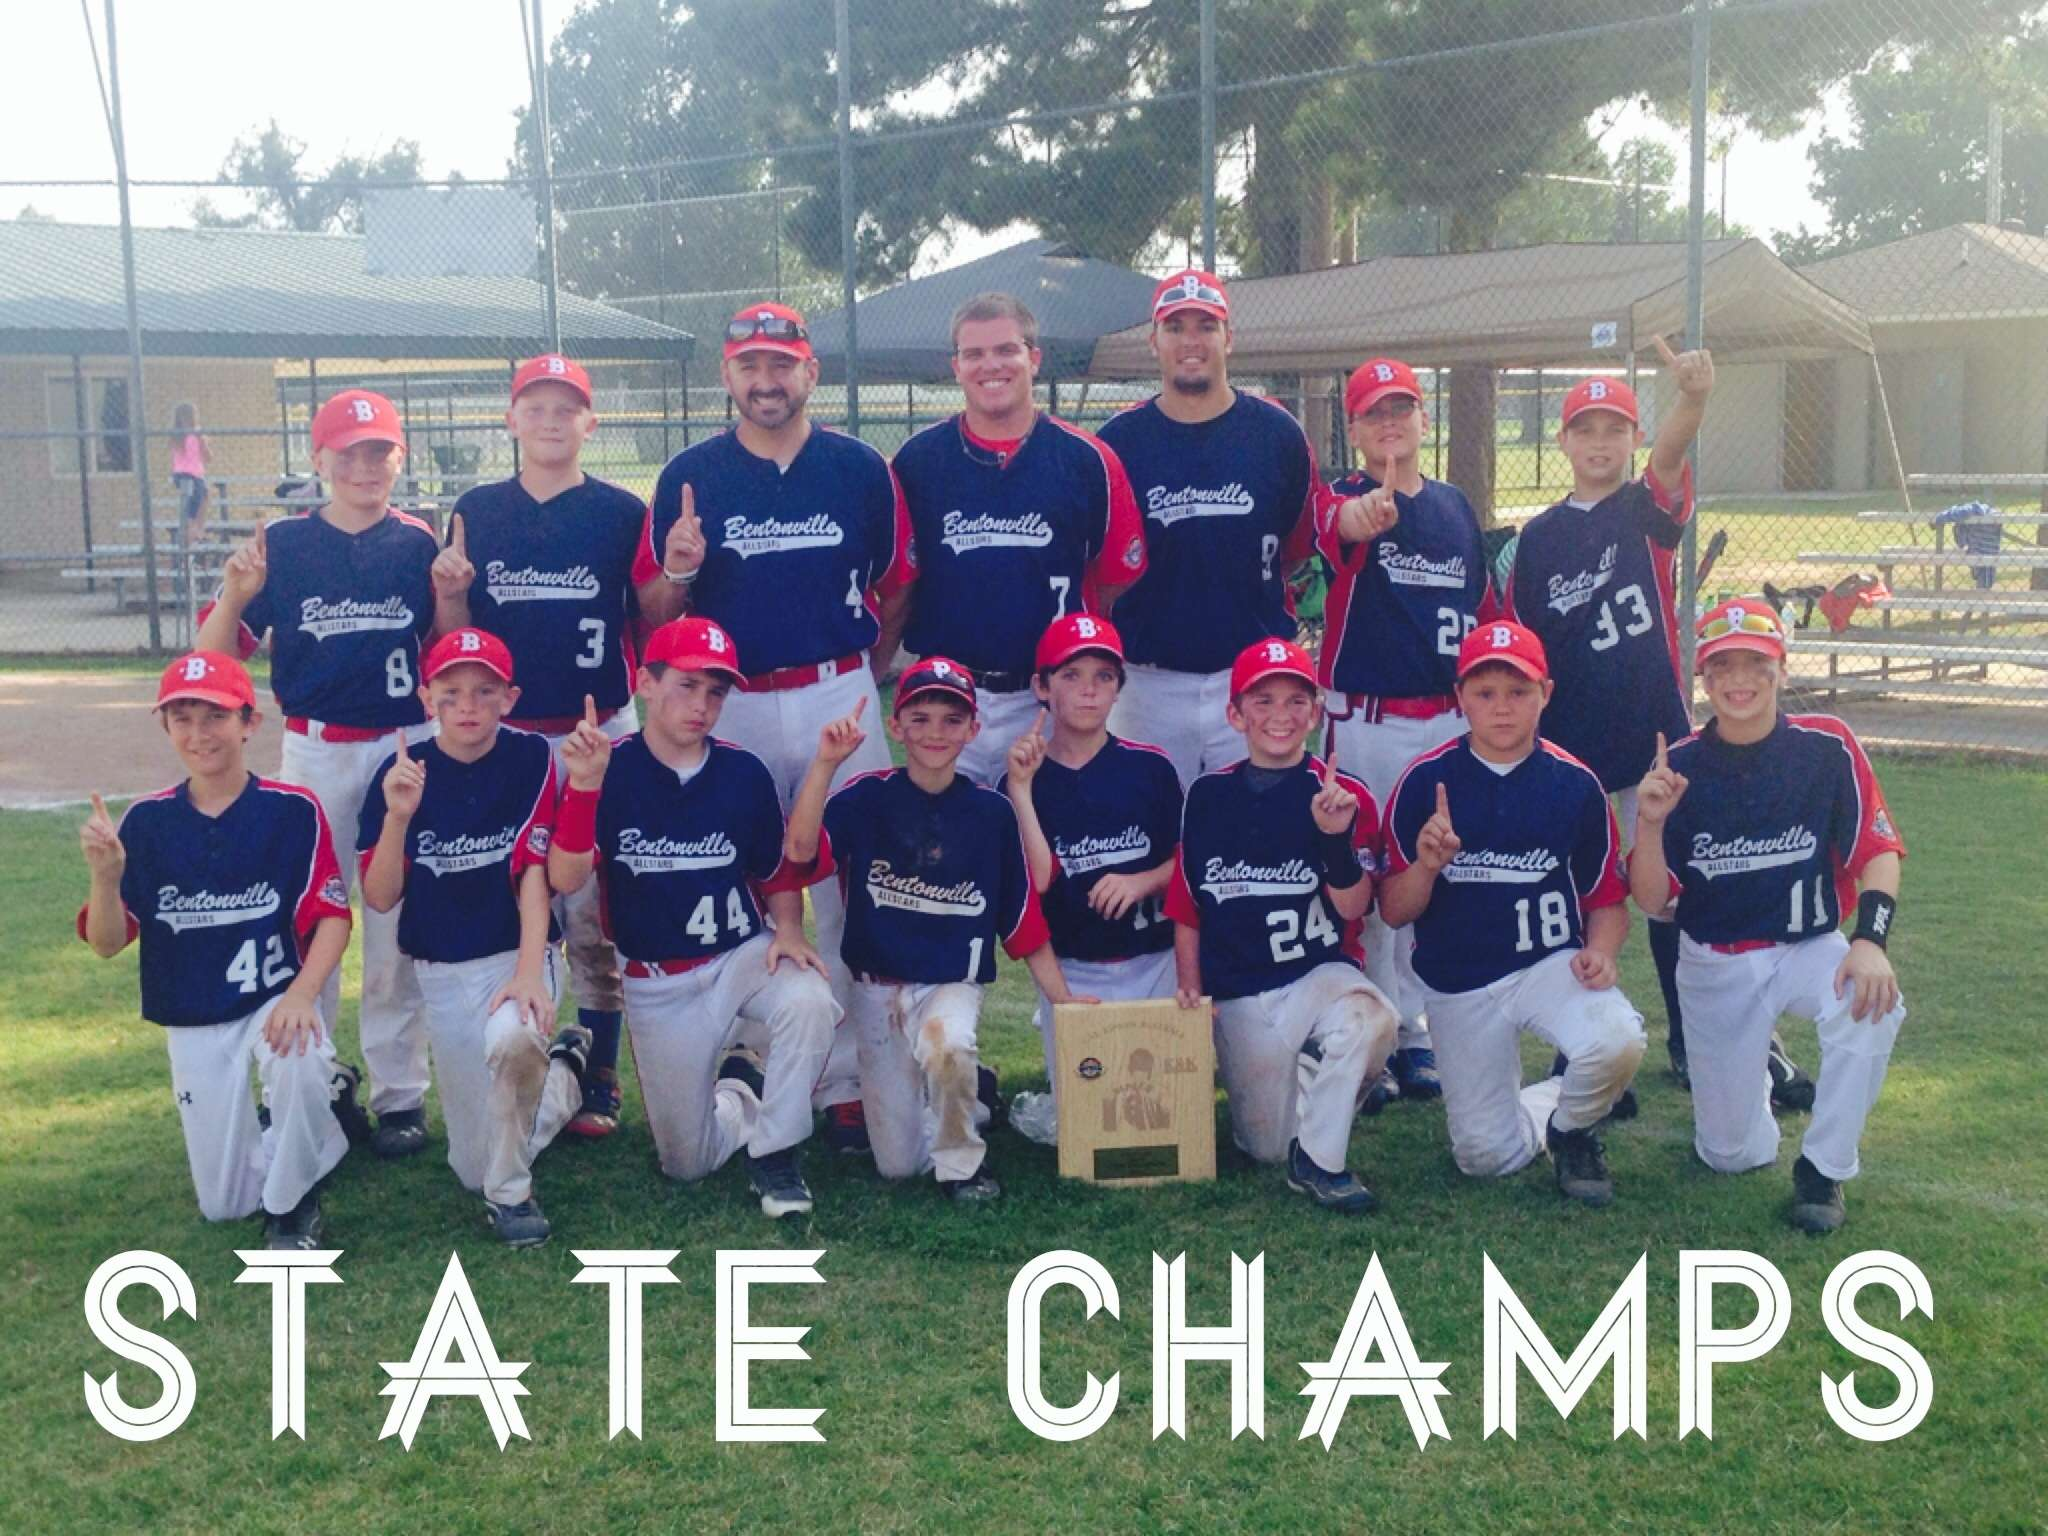 12 State Champs